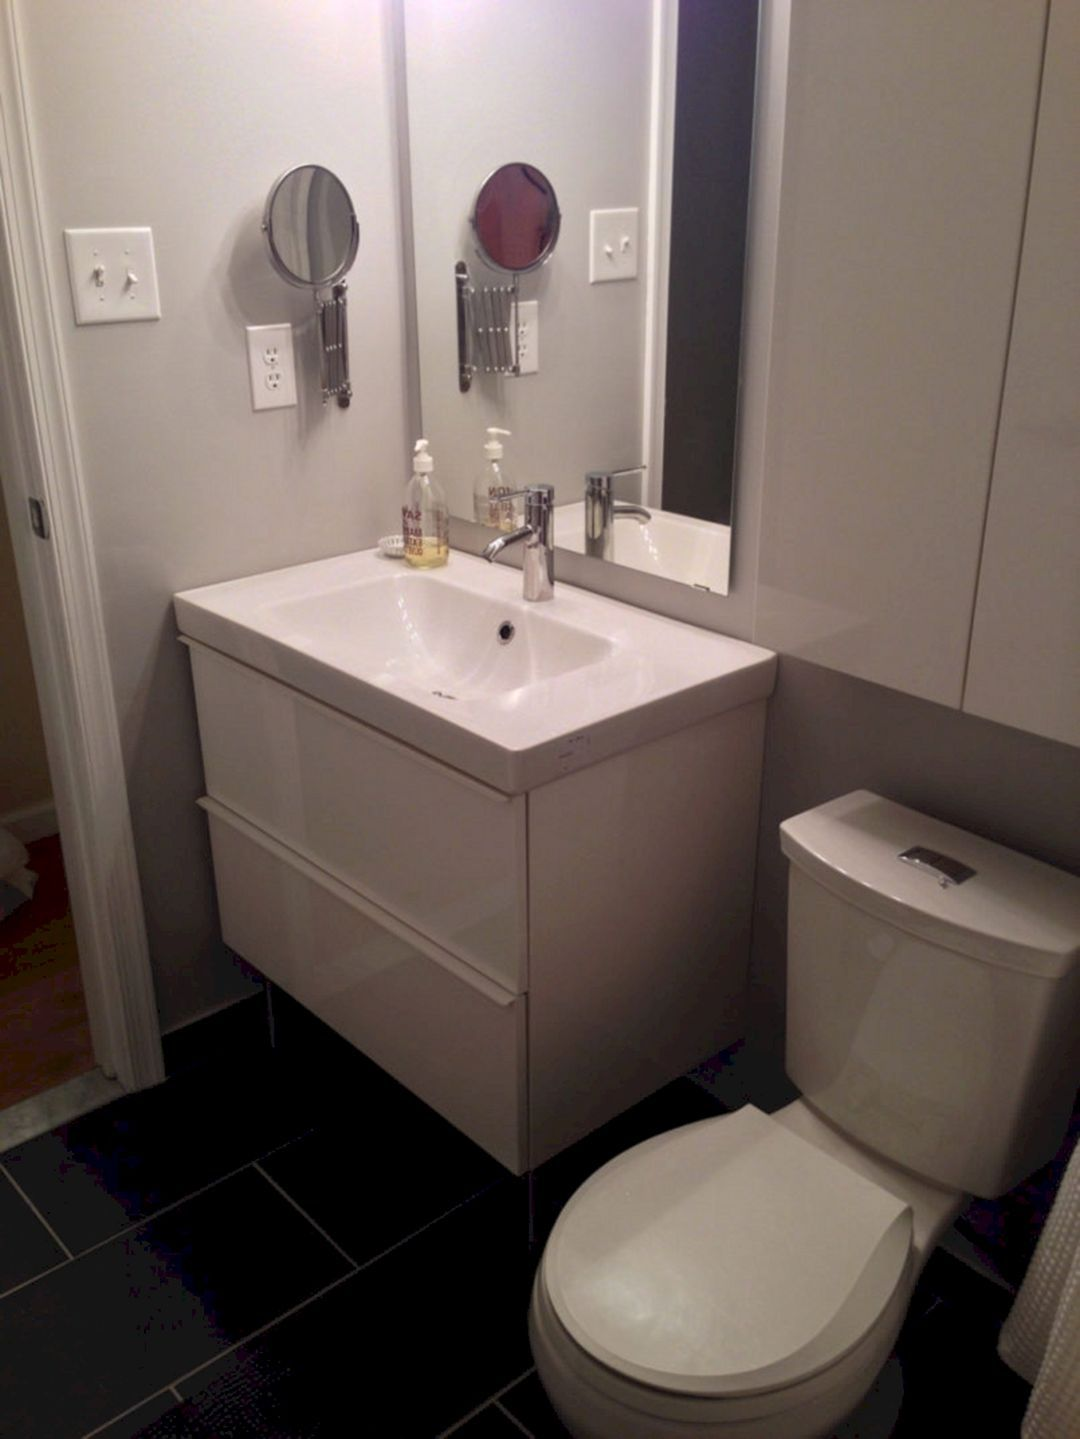 25 Ikea Bathroom Vanities With Tops For Amazing Bathroom Ideas Freshouz Com Ikea Bathroom Floating Bathroom Vanities Ikea Bathroom Sinks